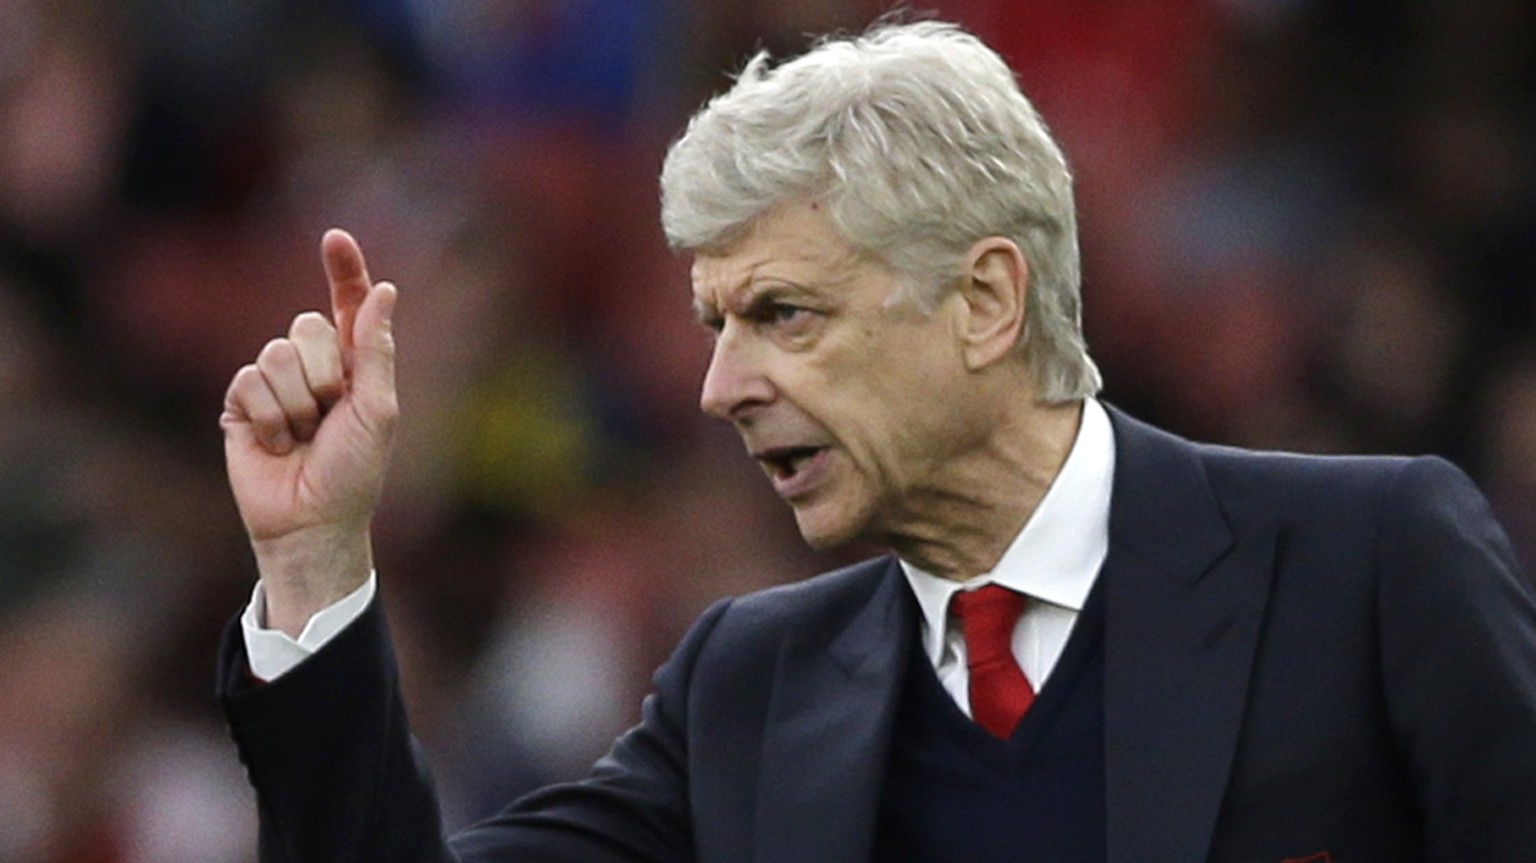 FILE - In this  Sunday, April 2, 2017 file photo, Arsenal team manager Arsene Wenger gestures during the English Premier League soccer match between Arsenal and Manchester City at the Emirates stadium in London. With Arsenal in danger of failing to qualify for the Champions League for the first time in 21 years, manager Arsene Wenger says his sixth-placed team faces a